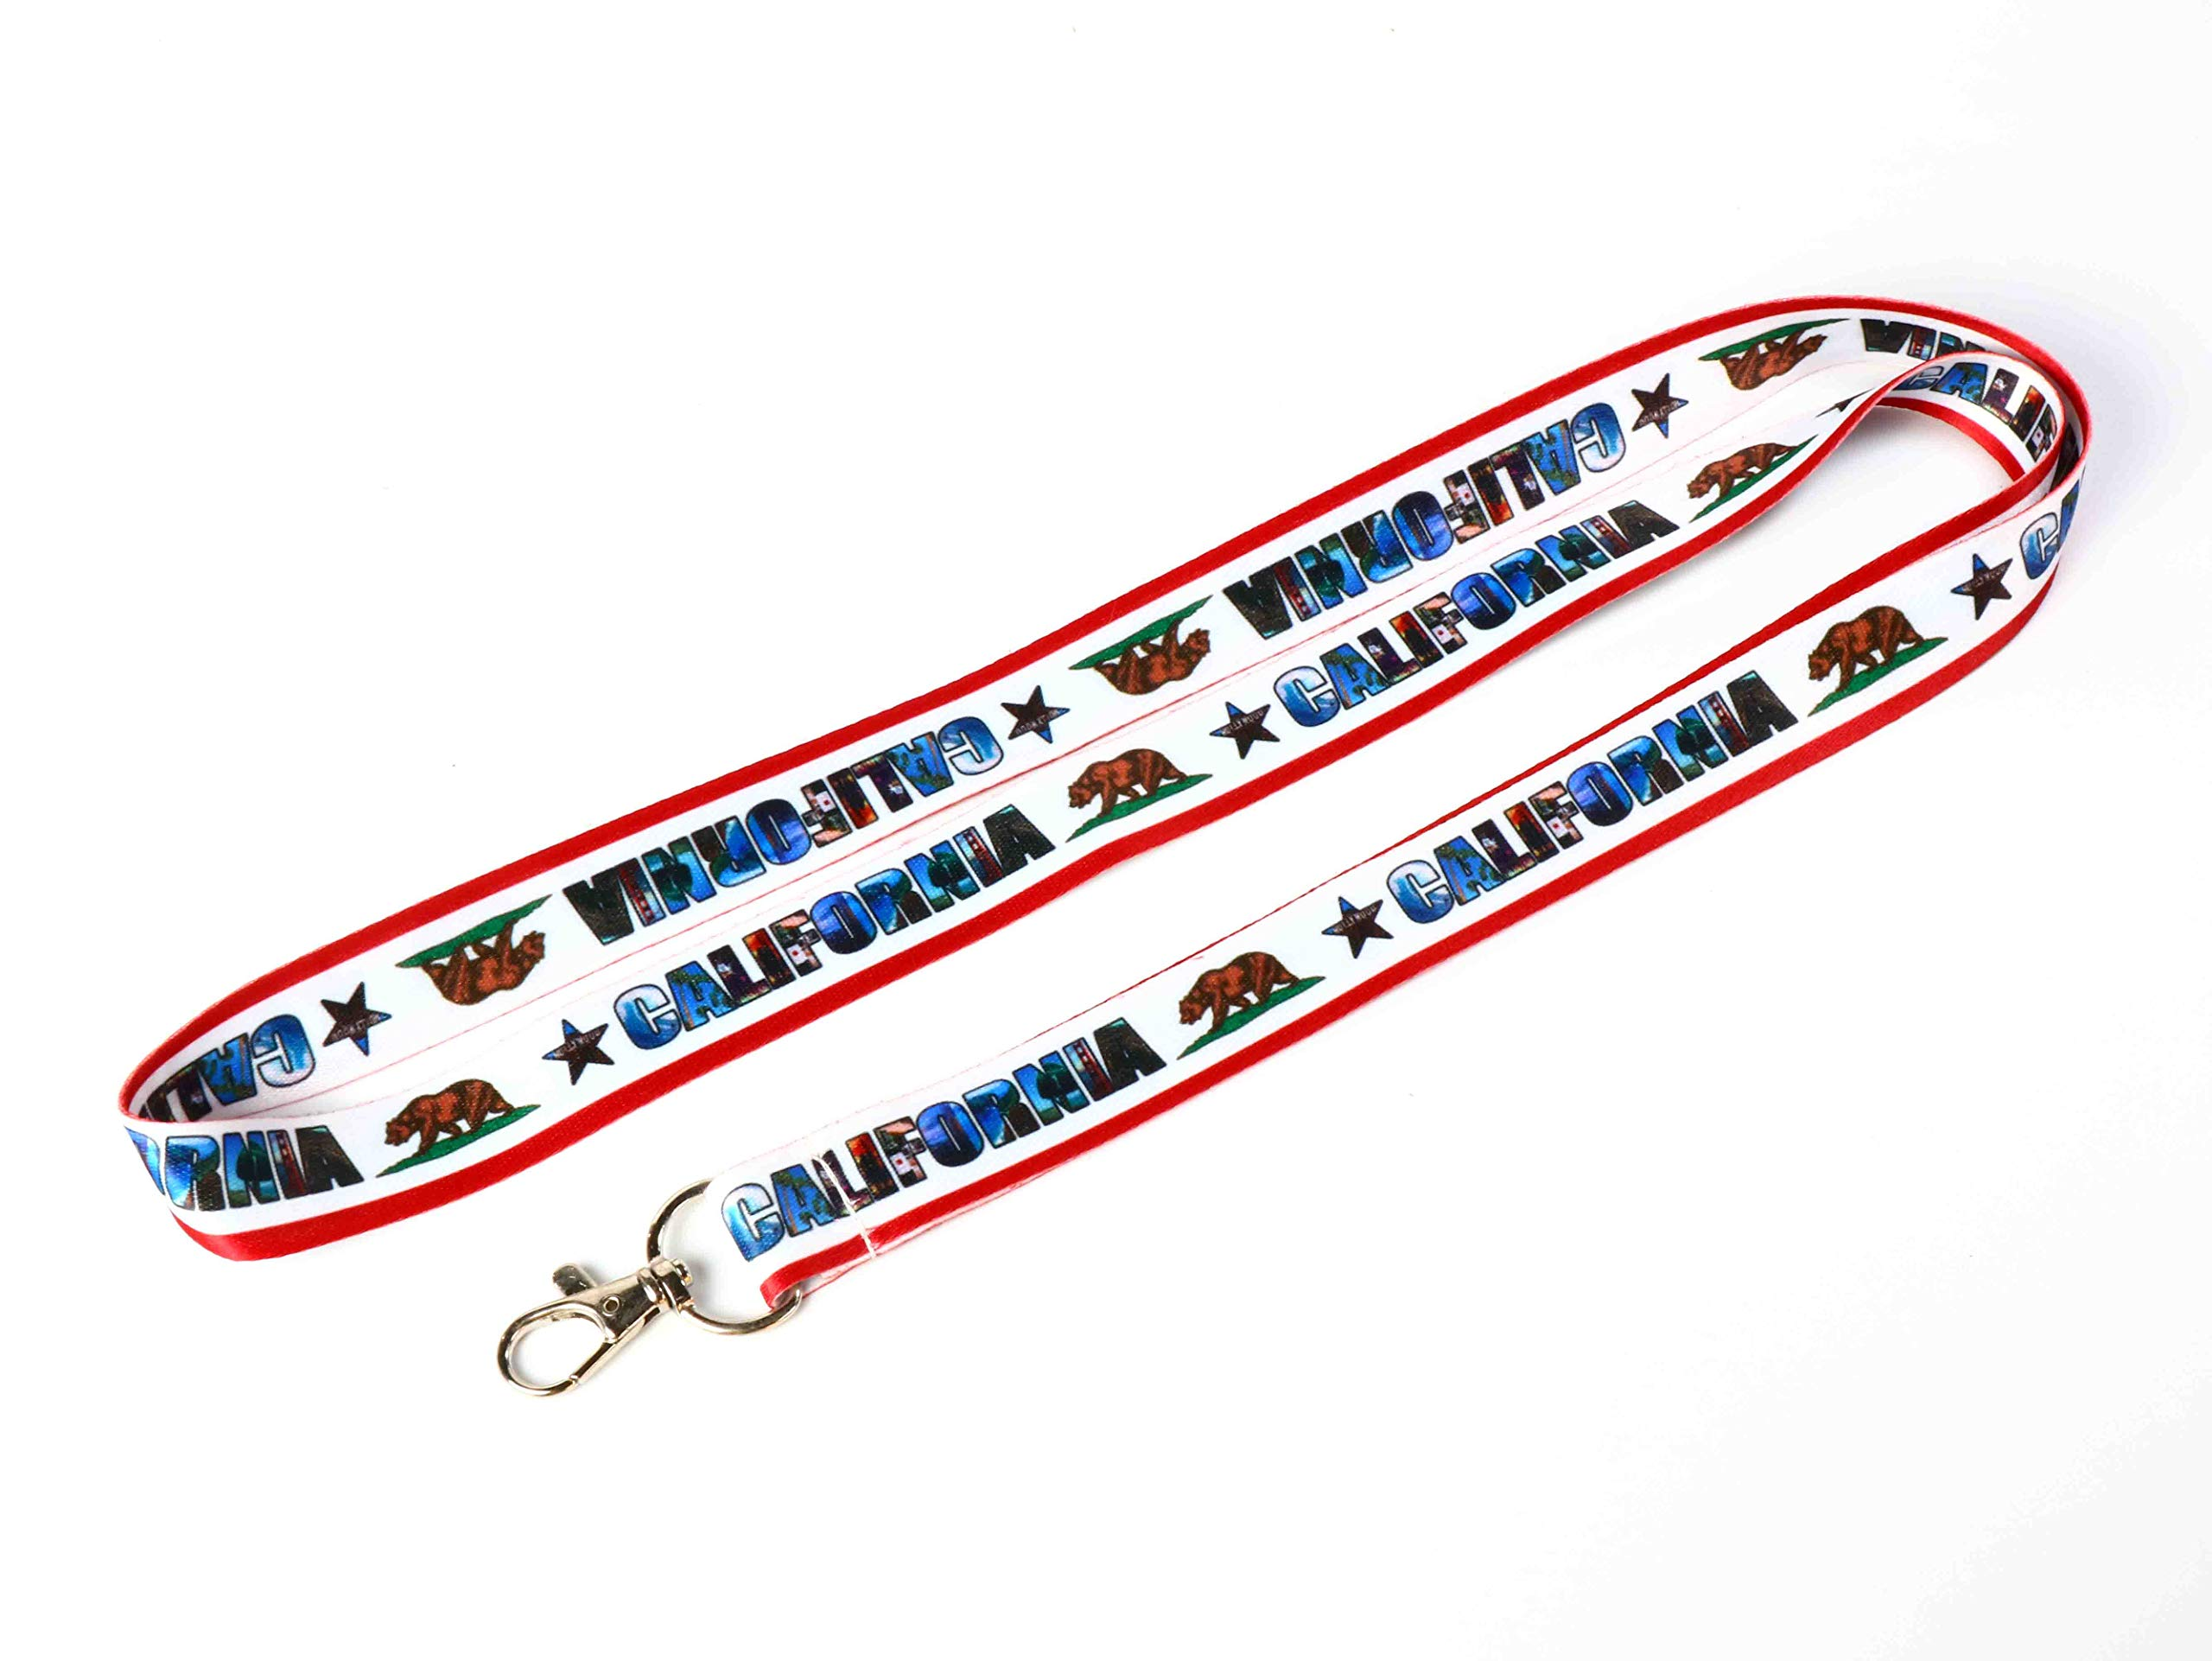 RockNerdy - California Lanyard Keychain with Metal Clasp - ID Lanyard for Keys Badges USB Whistle Passport Nametag - ID Holder Keychain for Women Men Kids (White, 50 Lanyards) by Lanyards and More